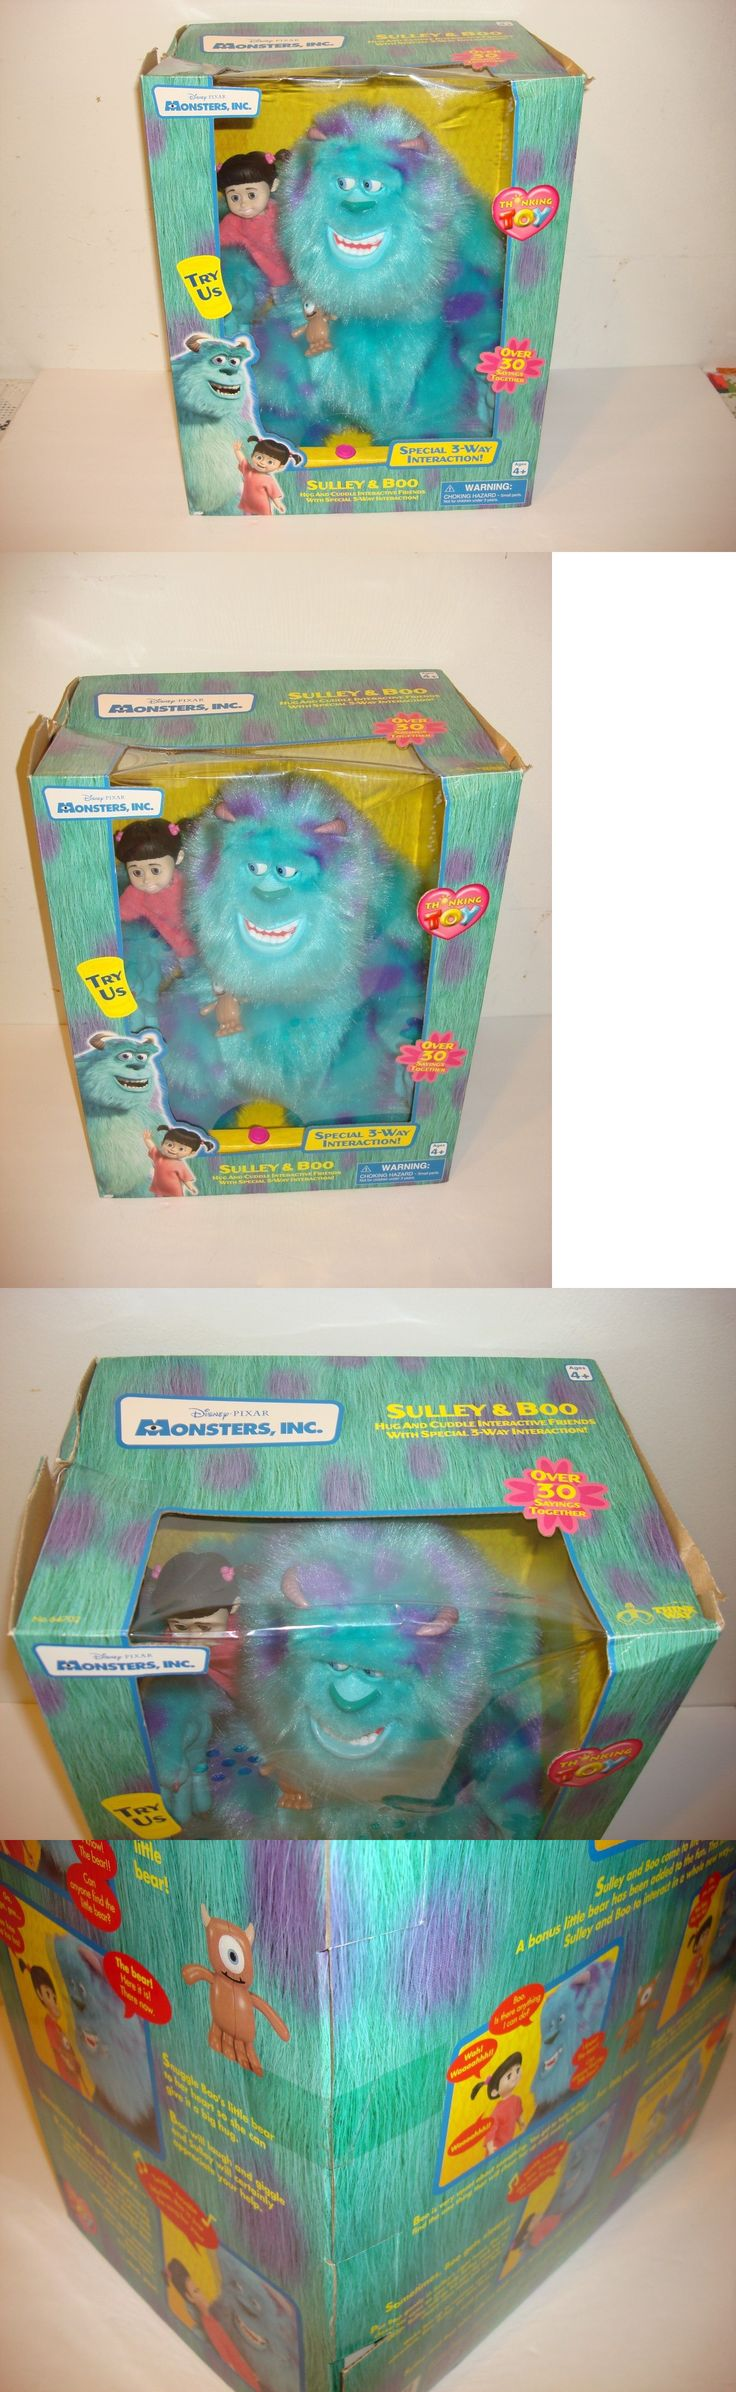 Monsters Inc 44038: New Sealed Thinkway Toys Disney S Monsters Inc, Sulley And Boo 2001 -> BUY IT NOW ONLY: $94.99 on eBay!